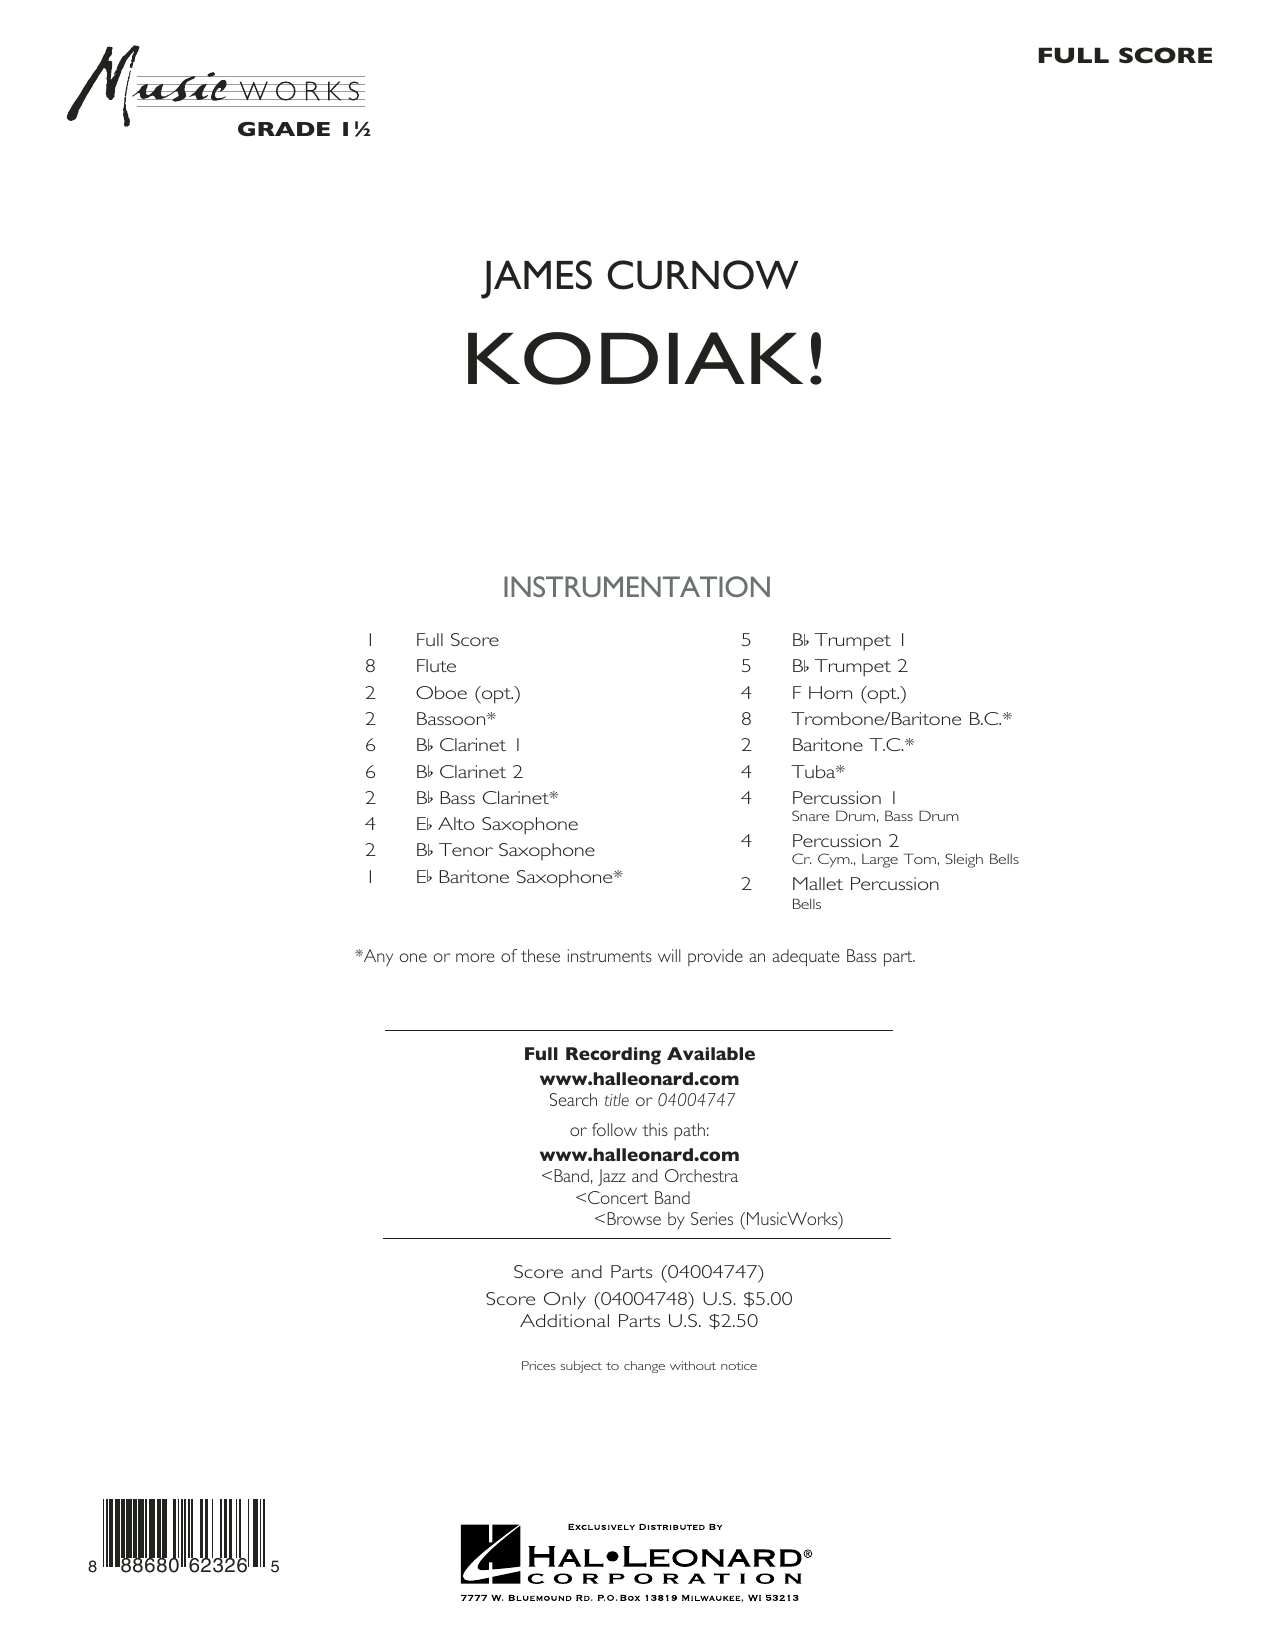 Kodiak! - Conductor Score (Full Score)